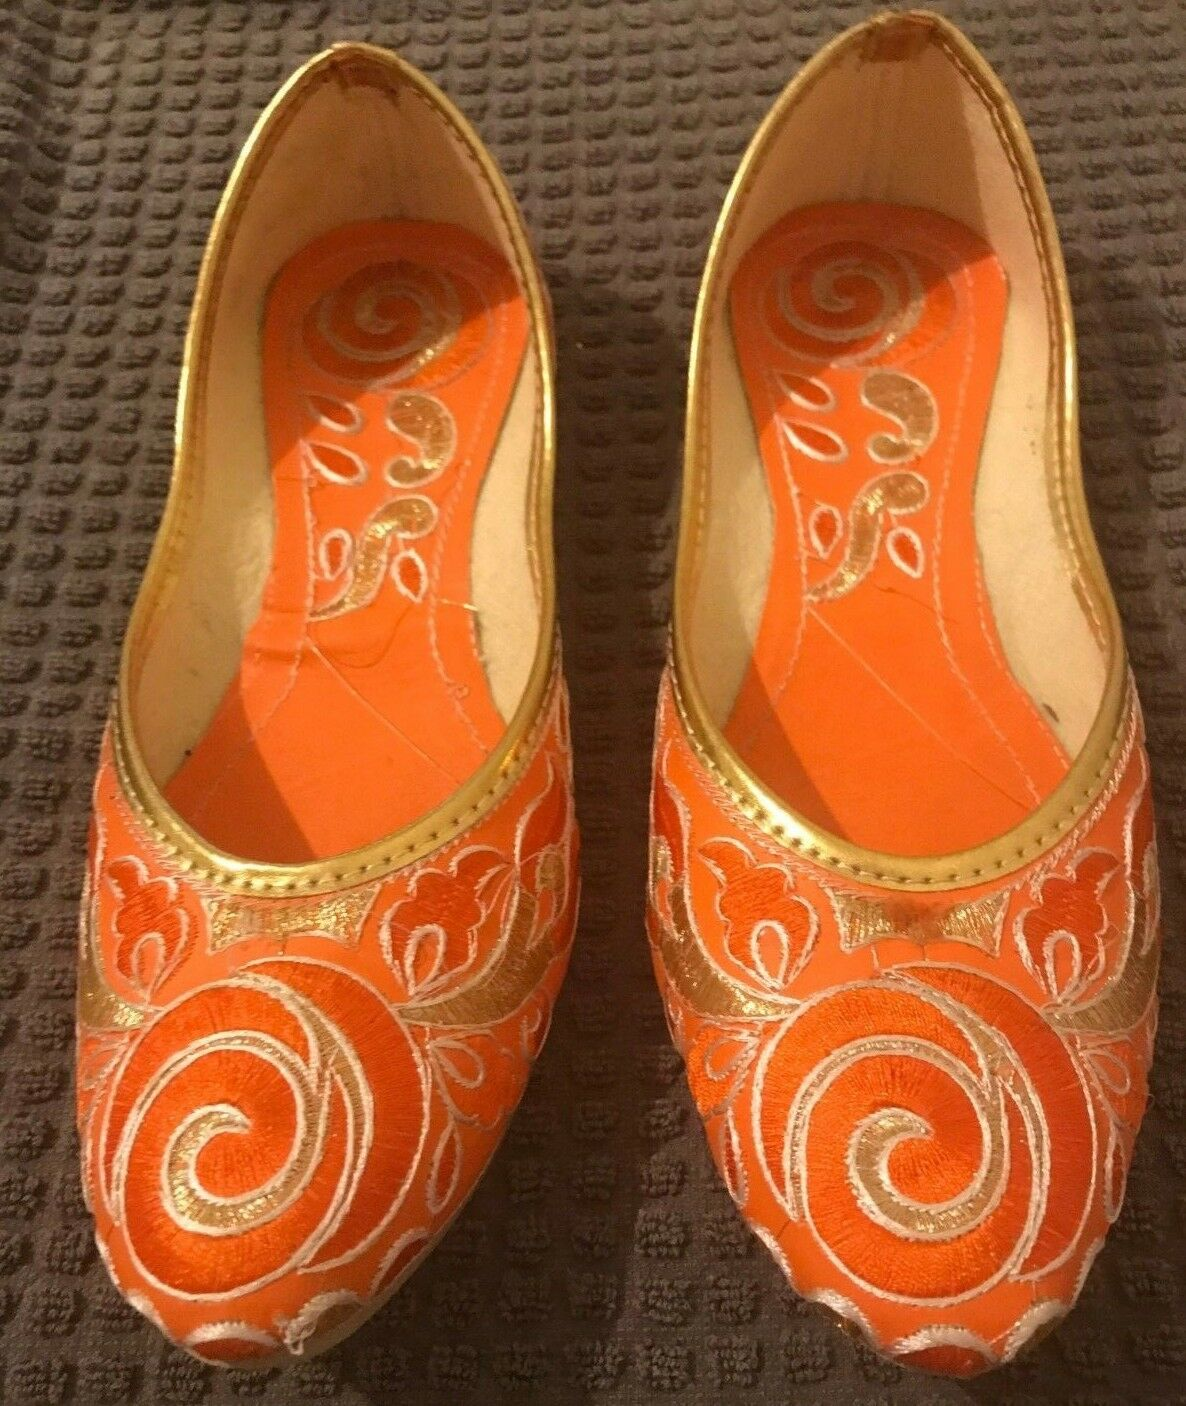 Chaussures Femme 8 chaussure indien traditionnel Plat Ballet Slipper Orange or broderie AMOUR